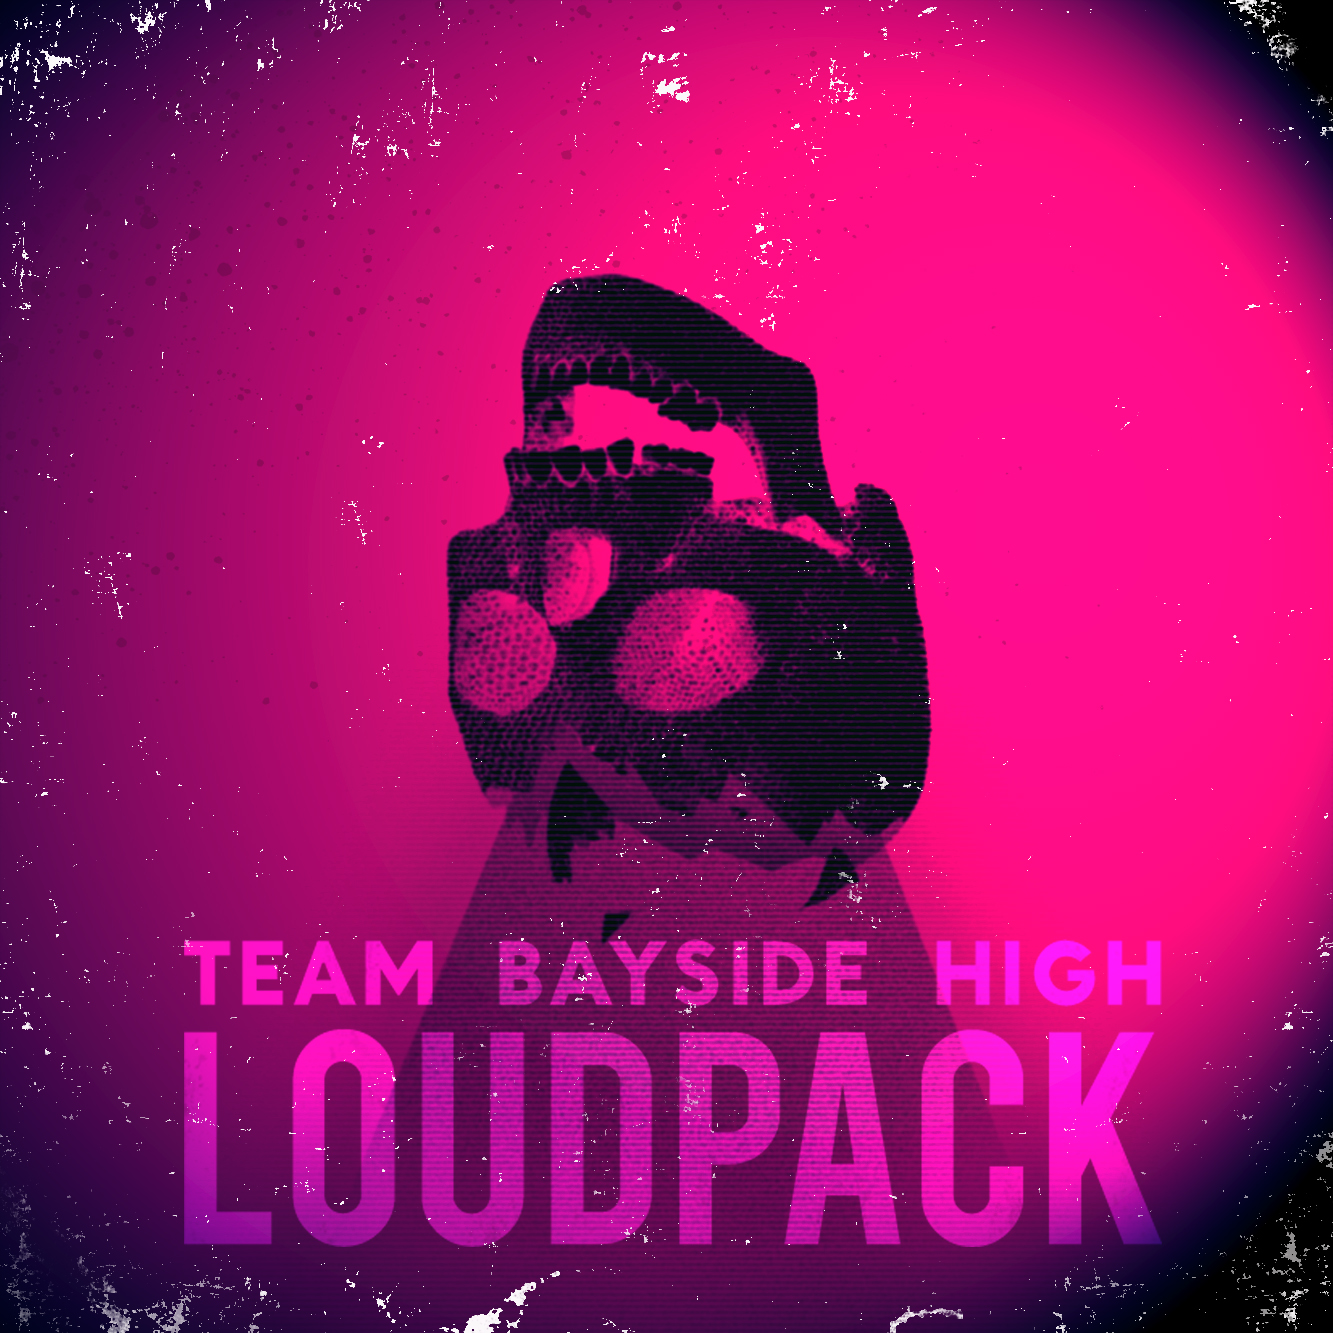 Team Bayside High, Loudpack. Bass Music.